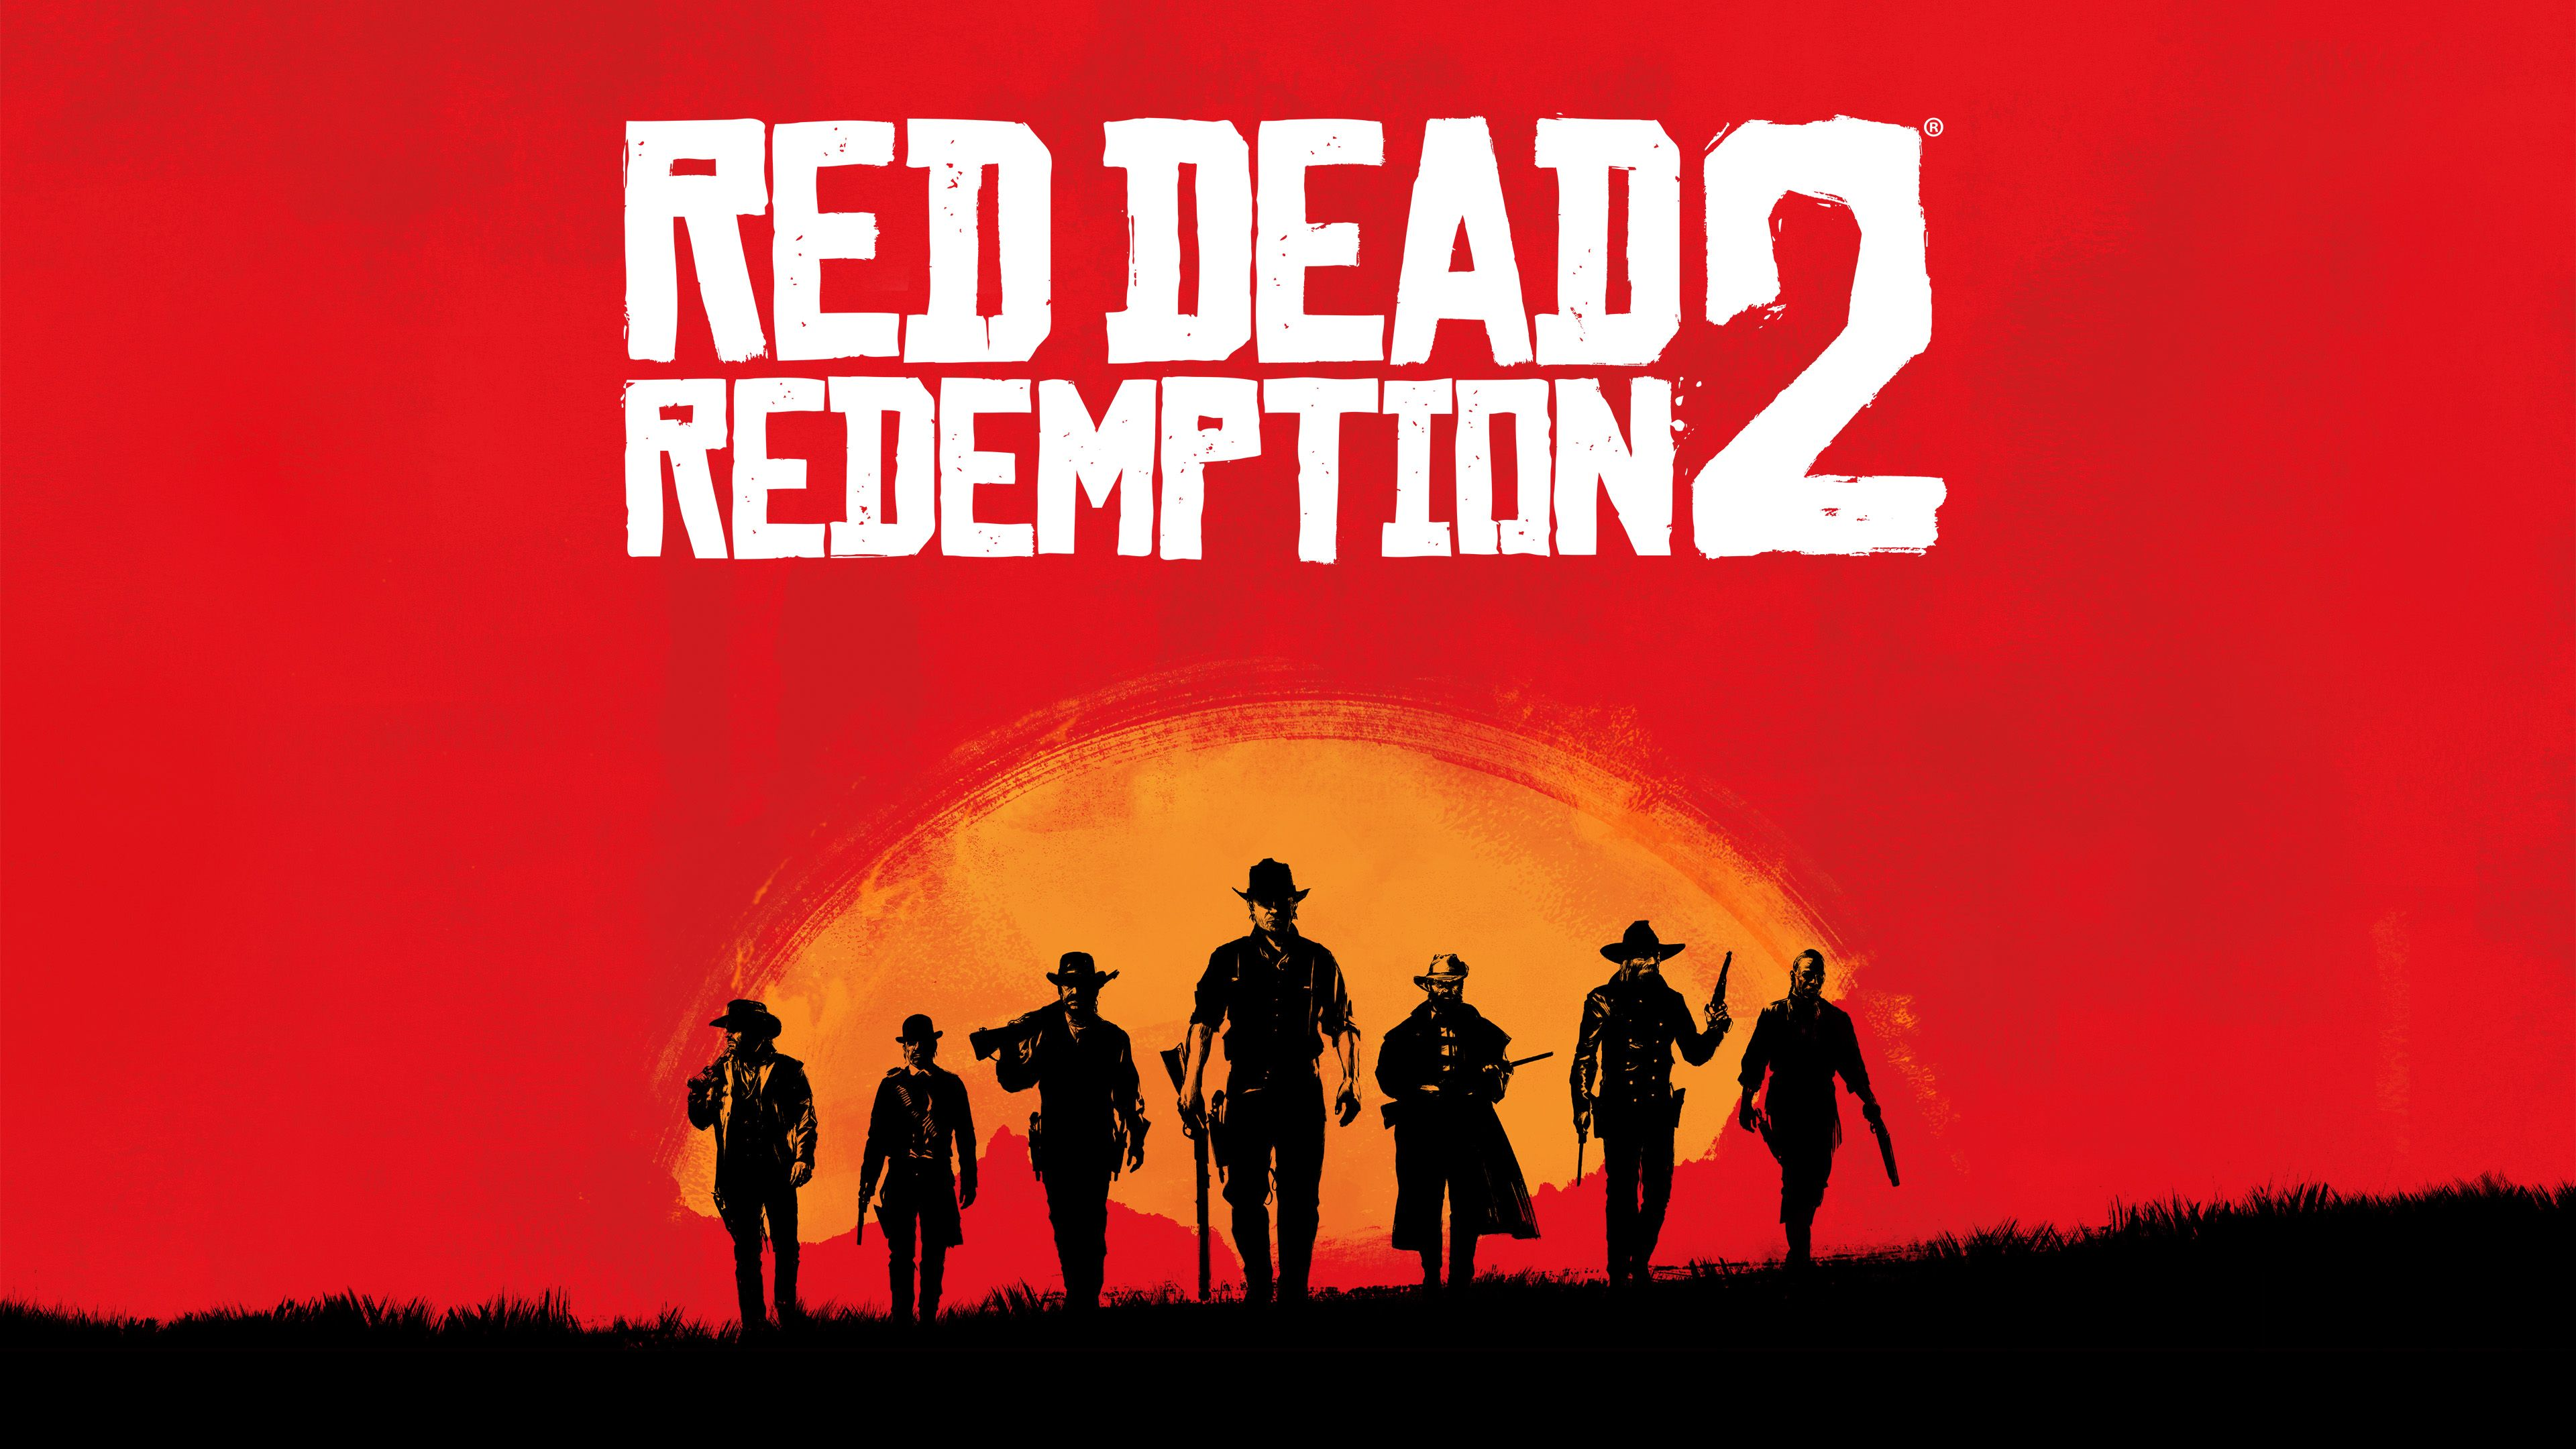 Red Dead Redemption 2 Wallpapers - Top Free Red Dead Redemption 2